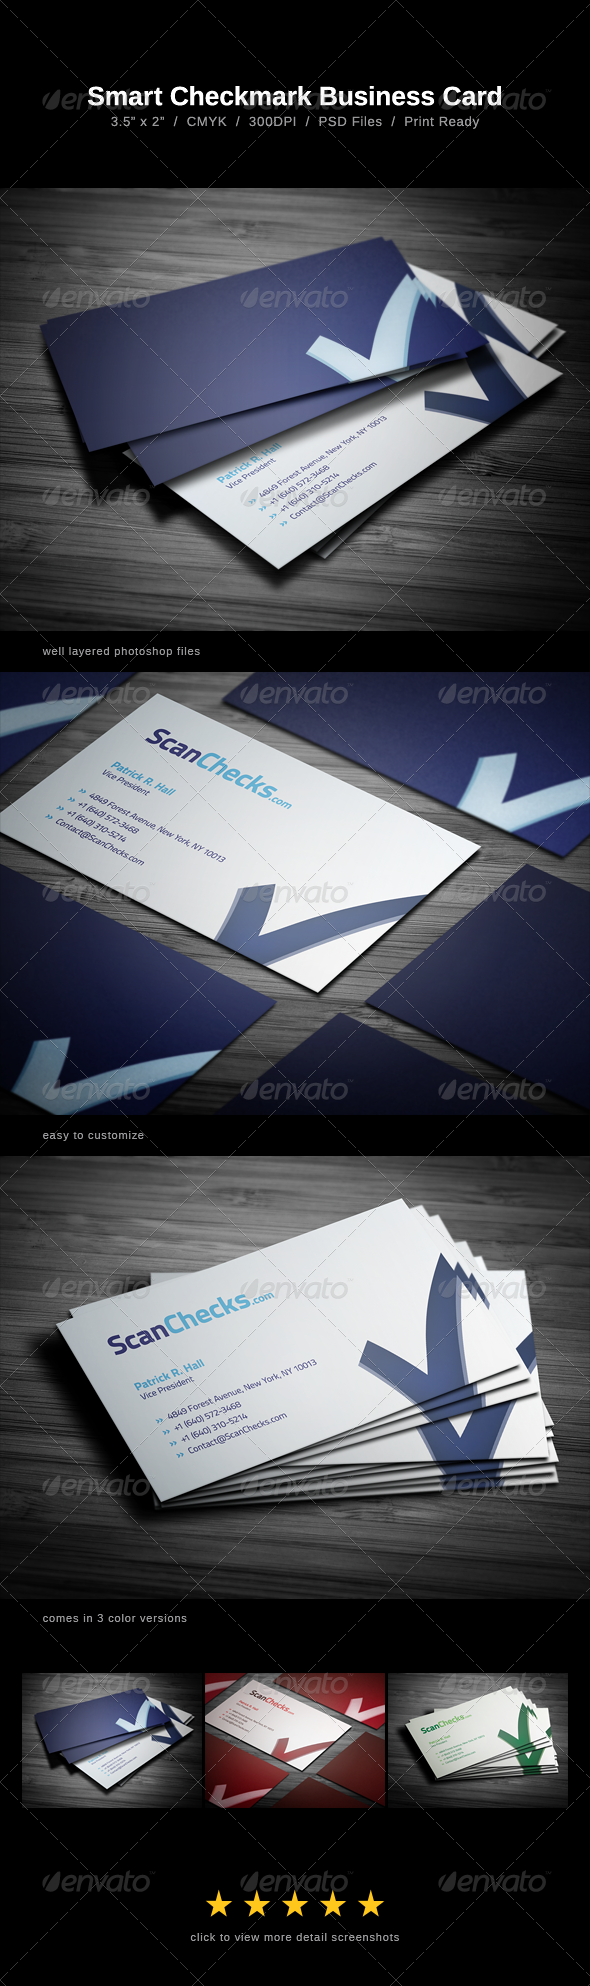 Smart Checkmark Business Card